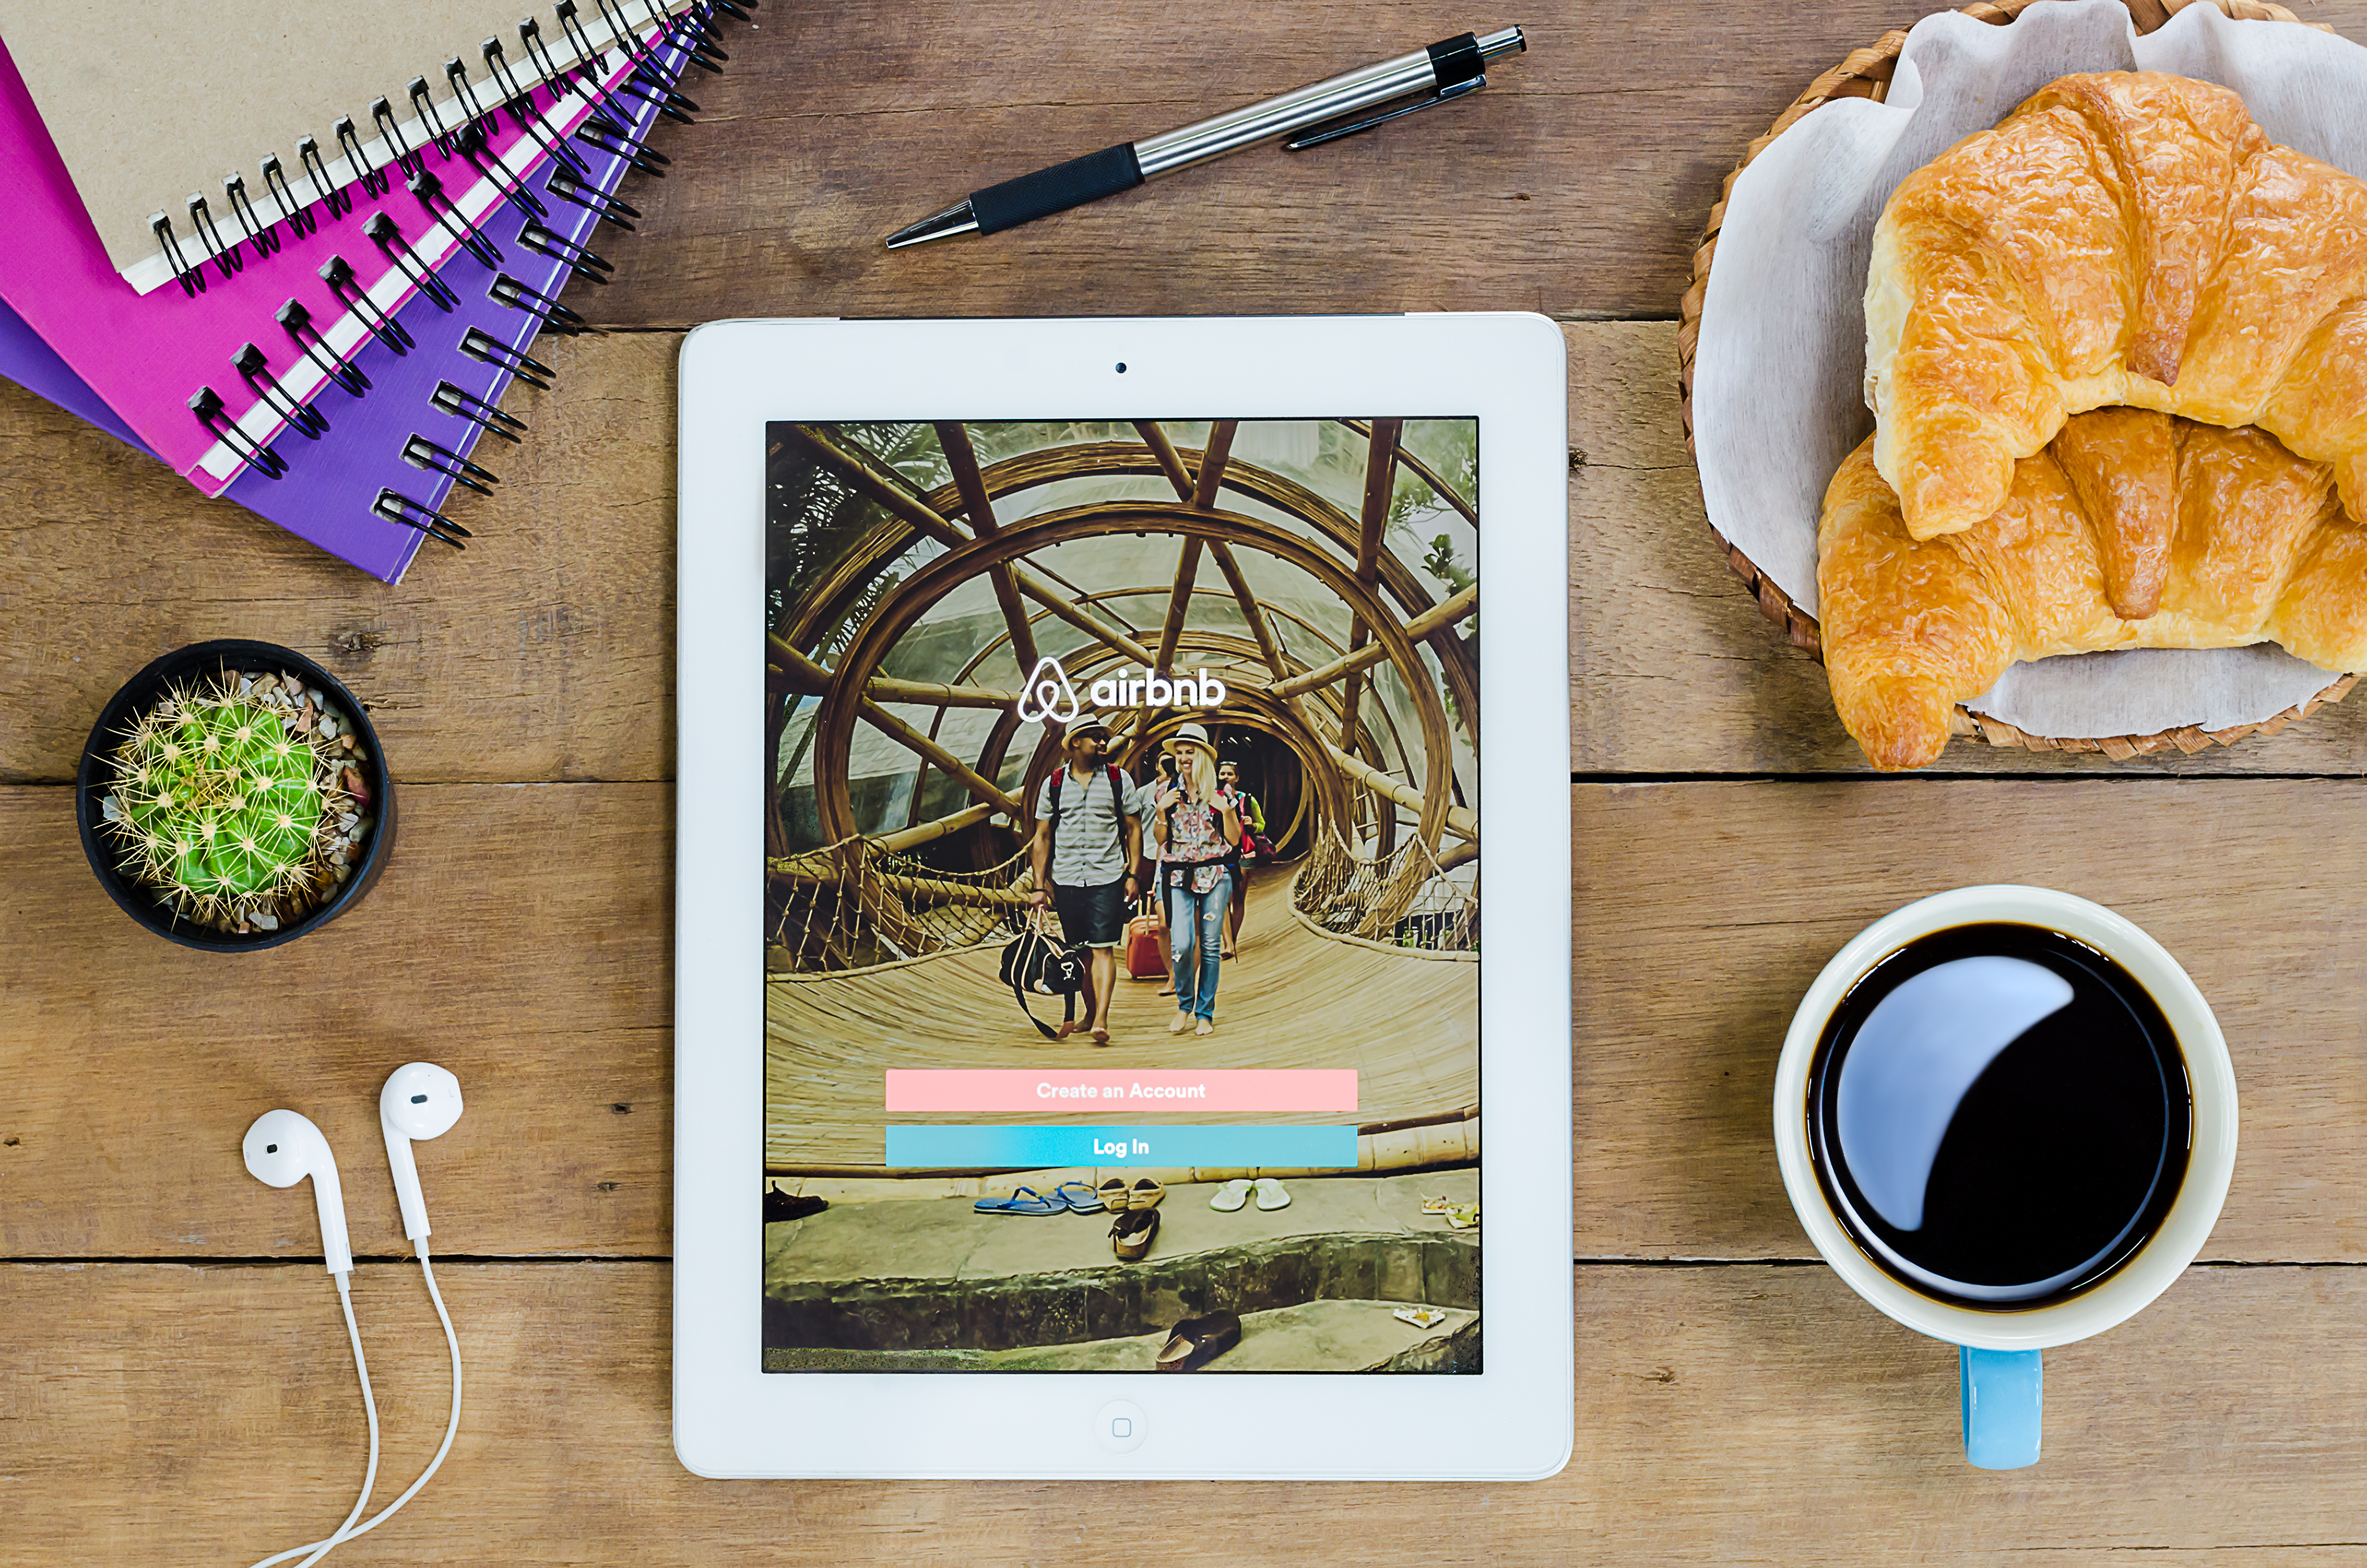 Airbnb app on tablet sitting on table with coffee and croissants